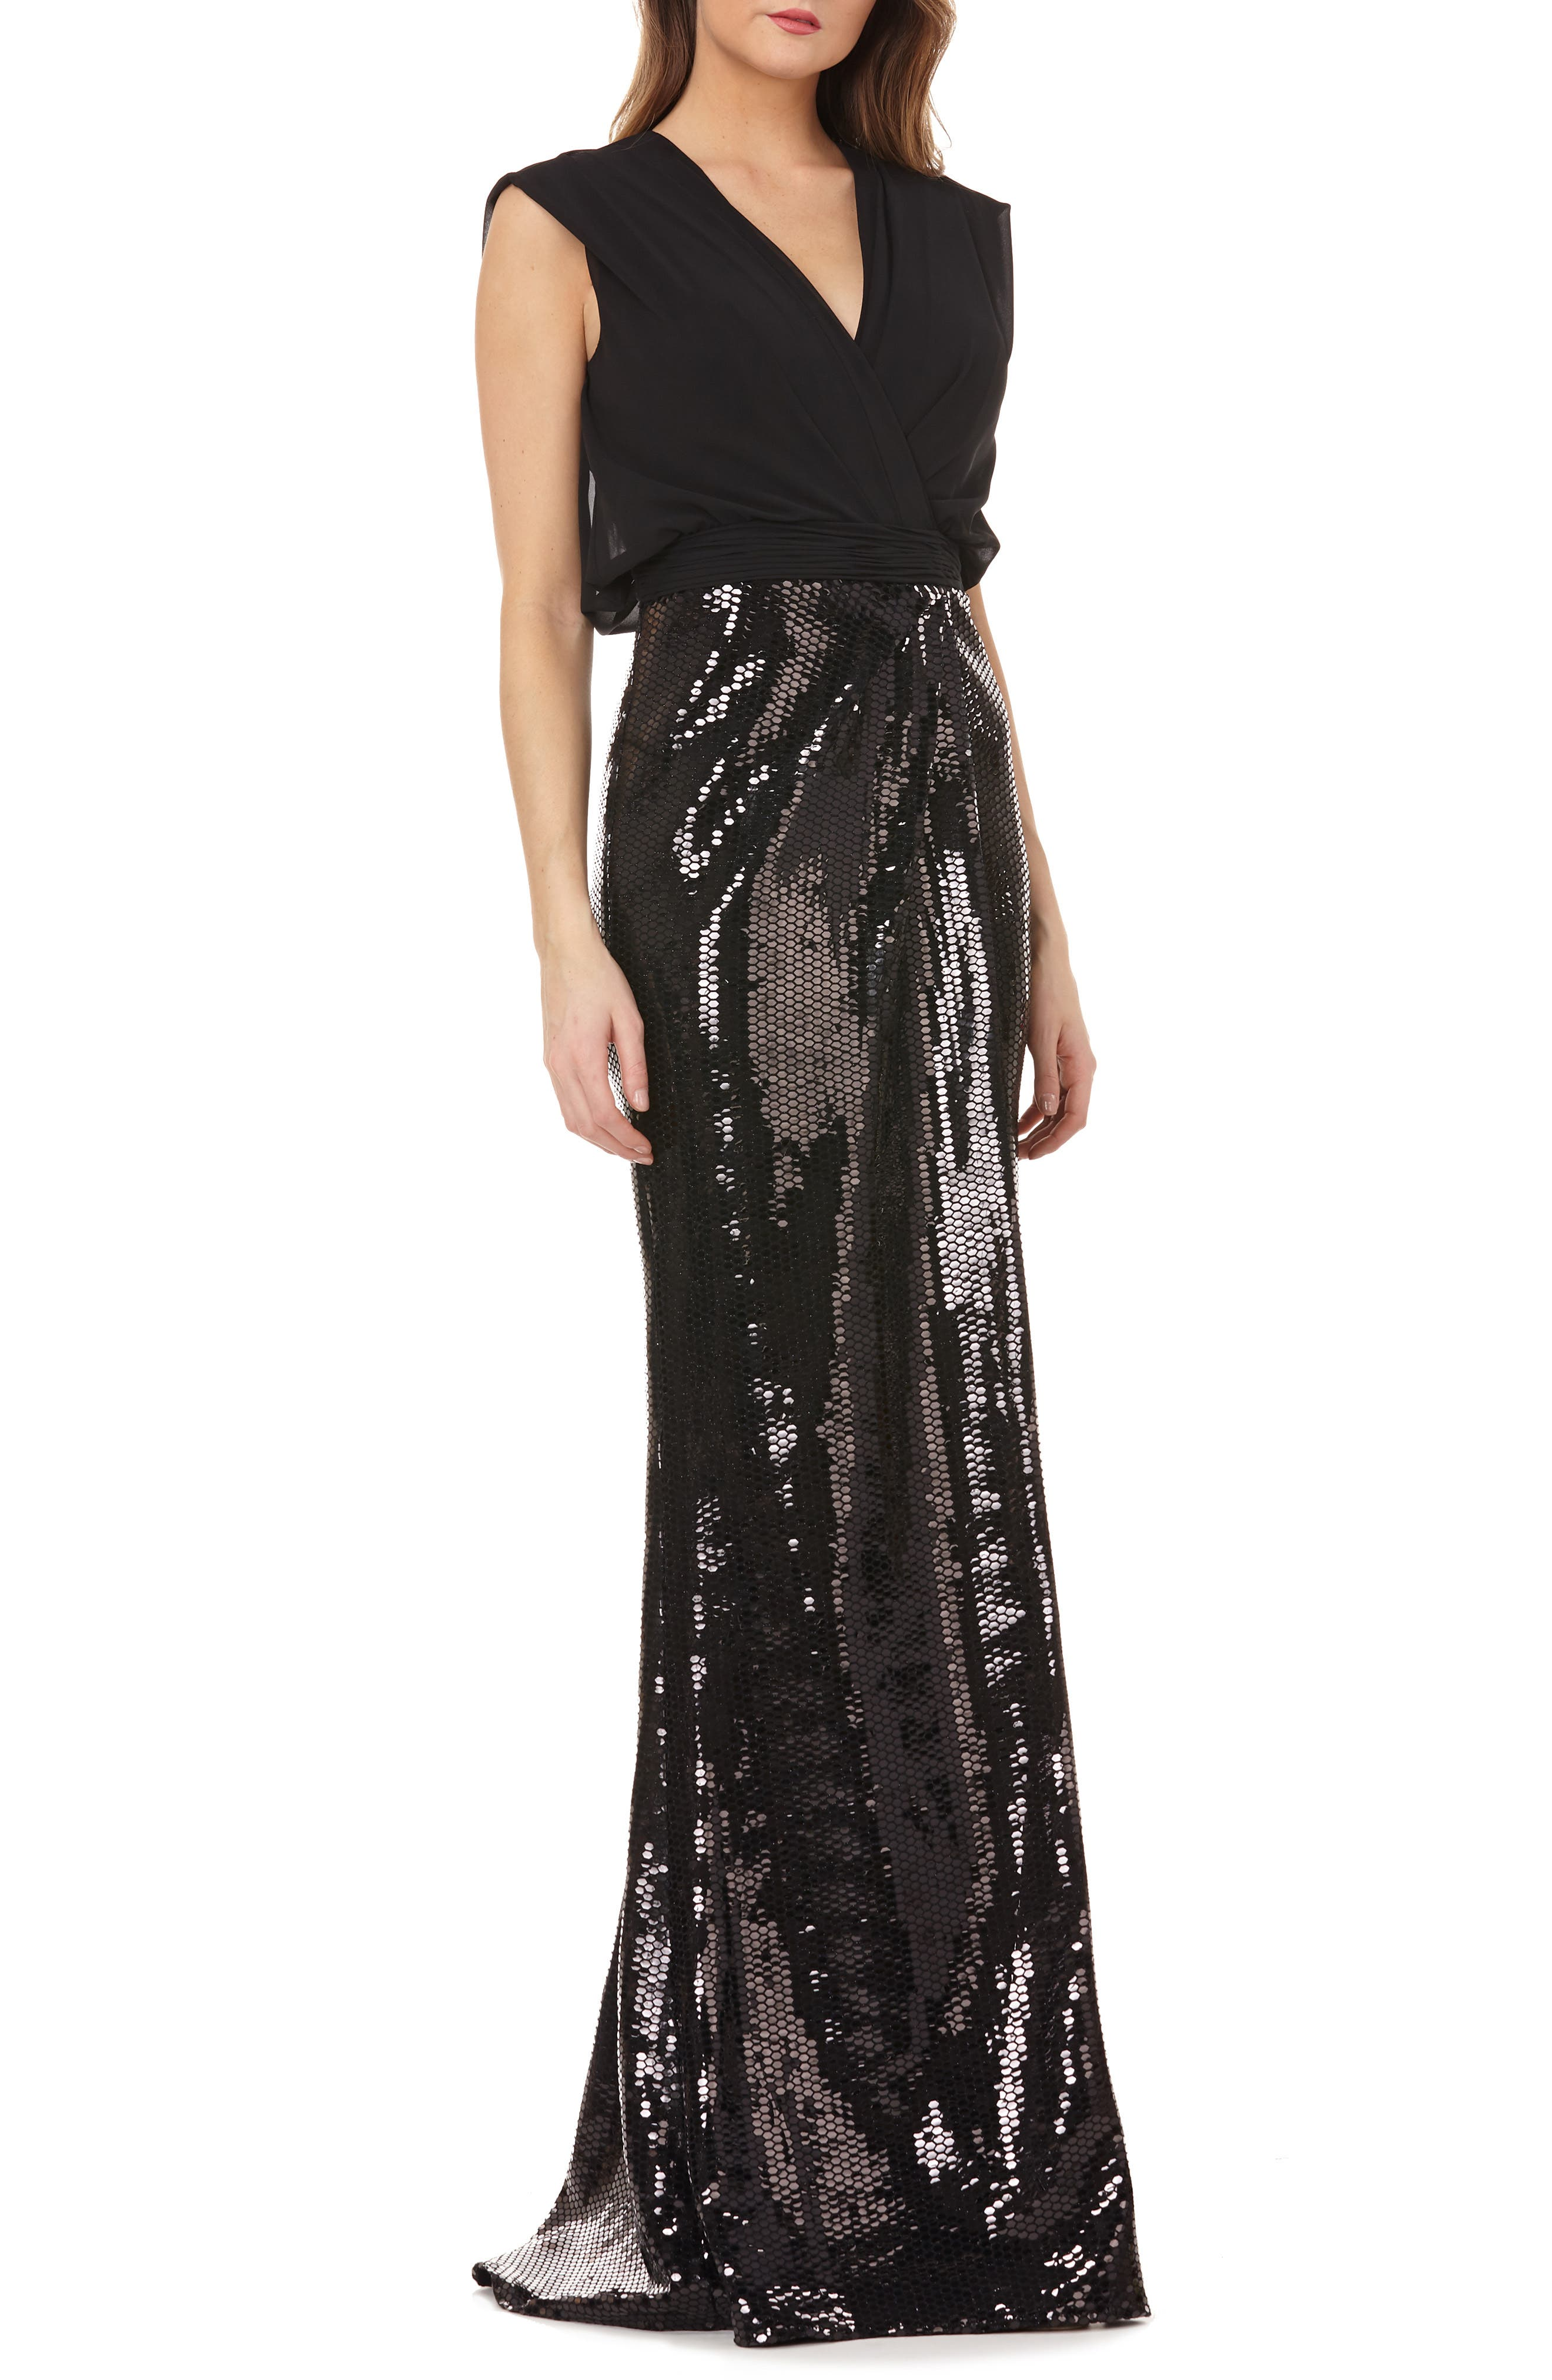 KAY UNGER, Sequin Gown, Main thumbnail 1, color, 001